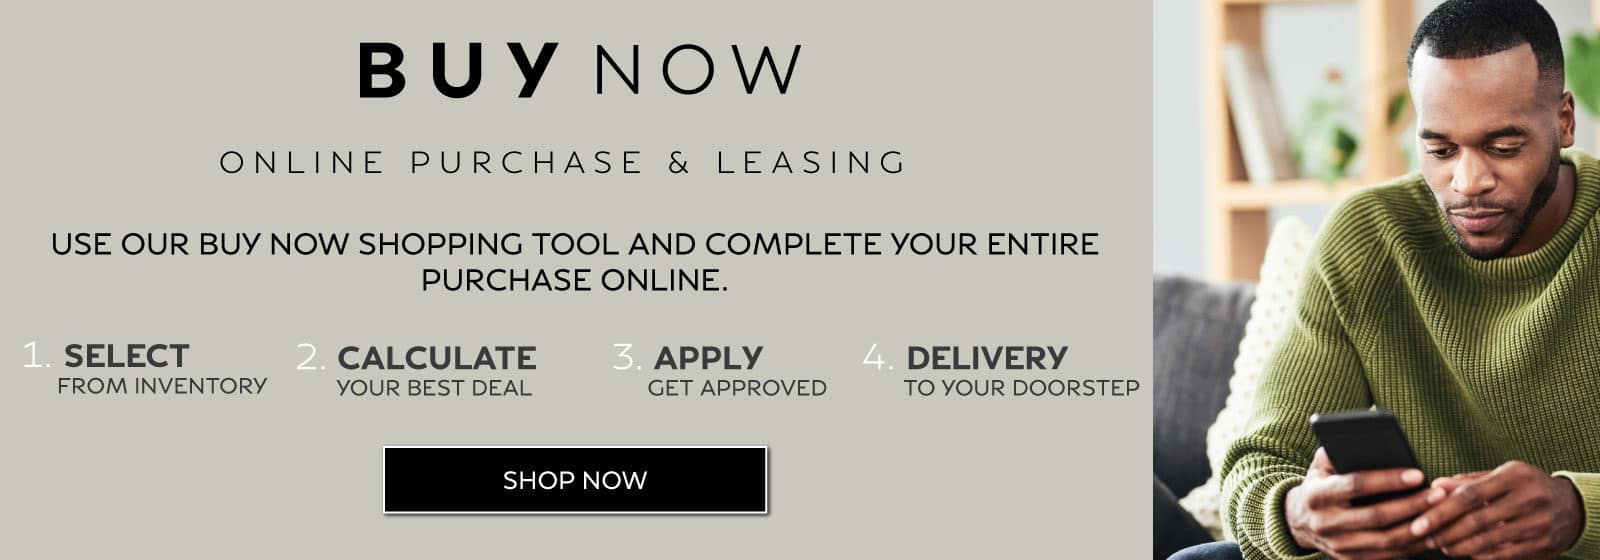 Buy Now - purchase a vehicle online in 4 simple steps